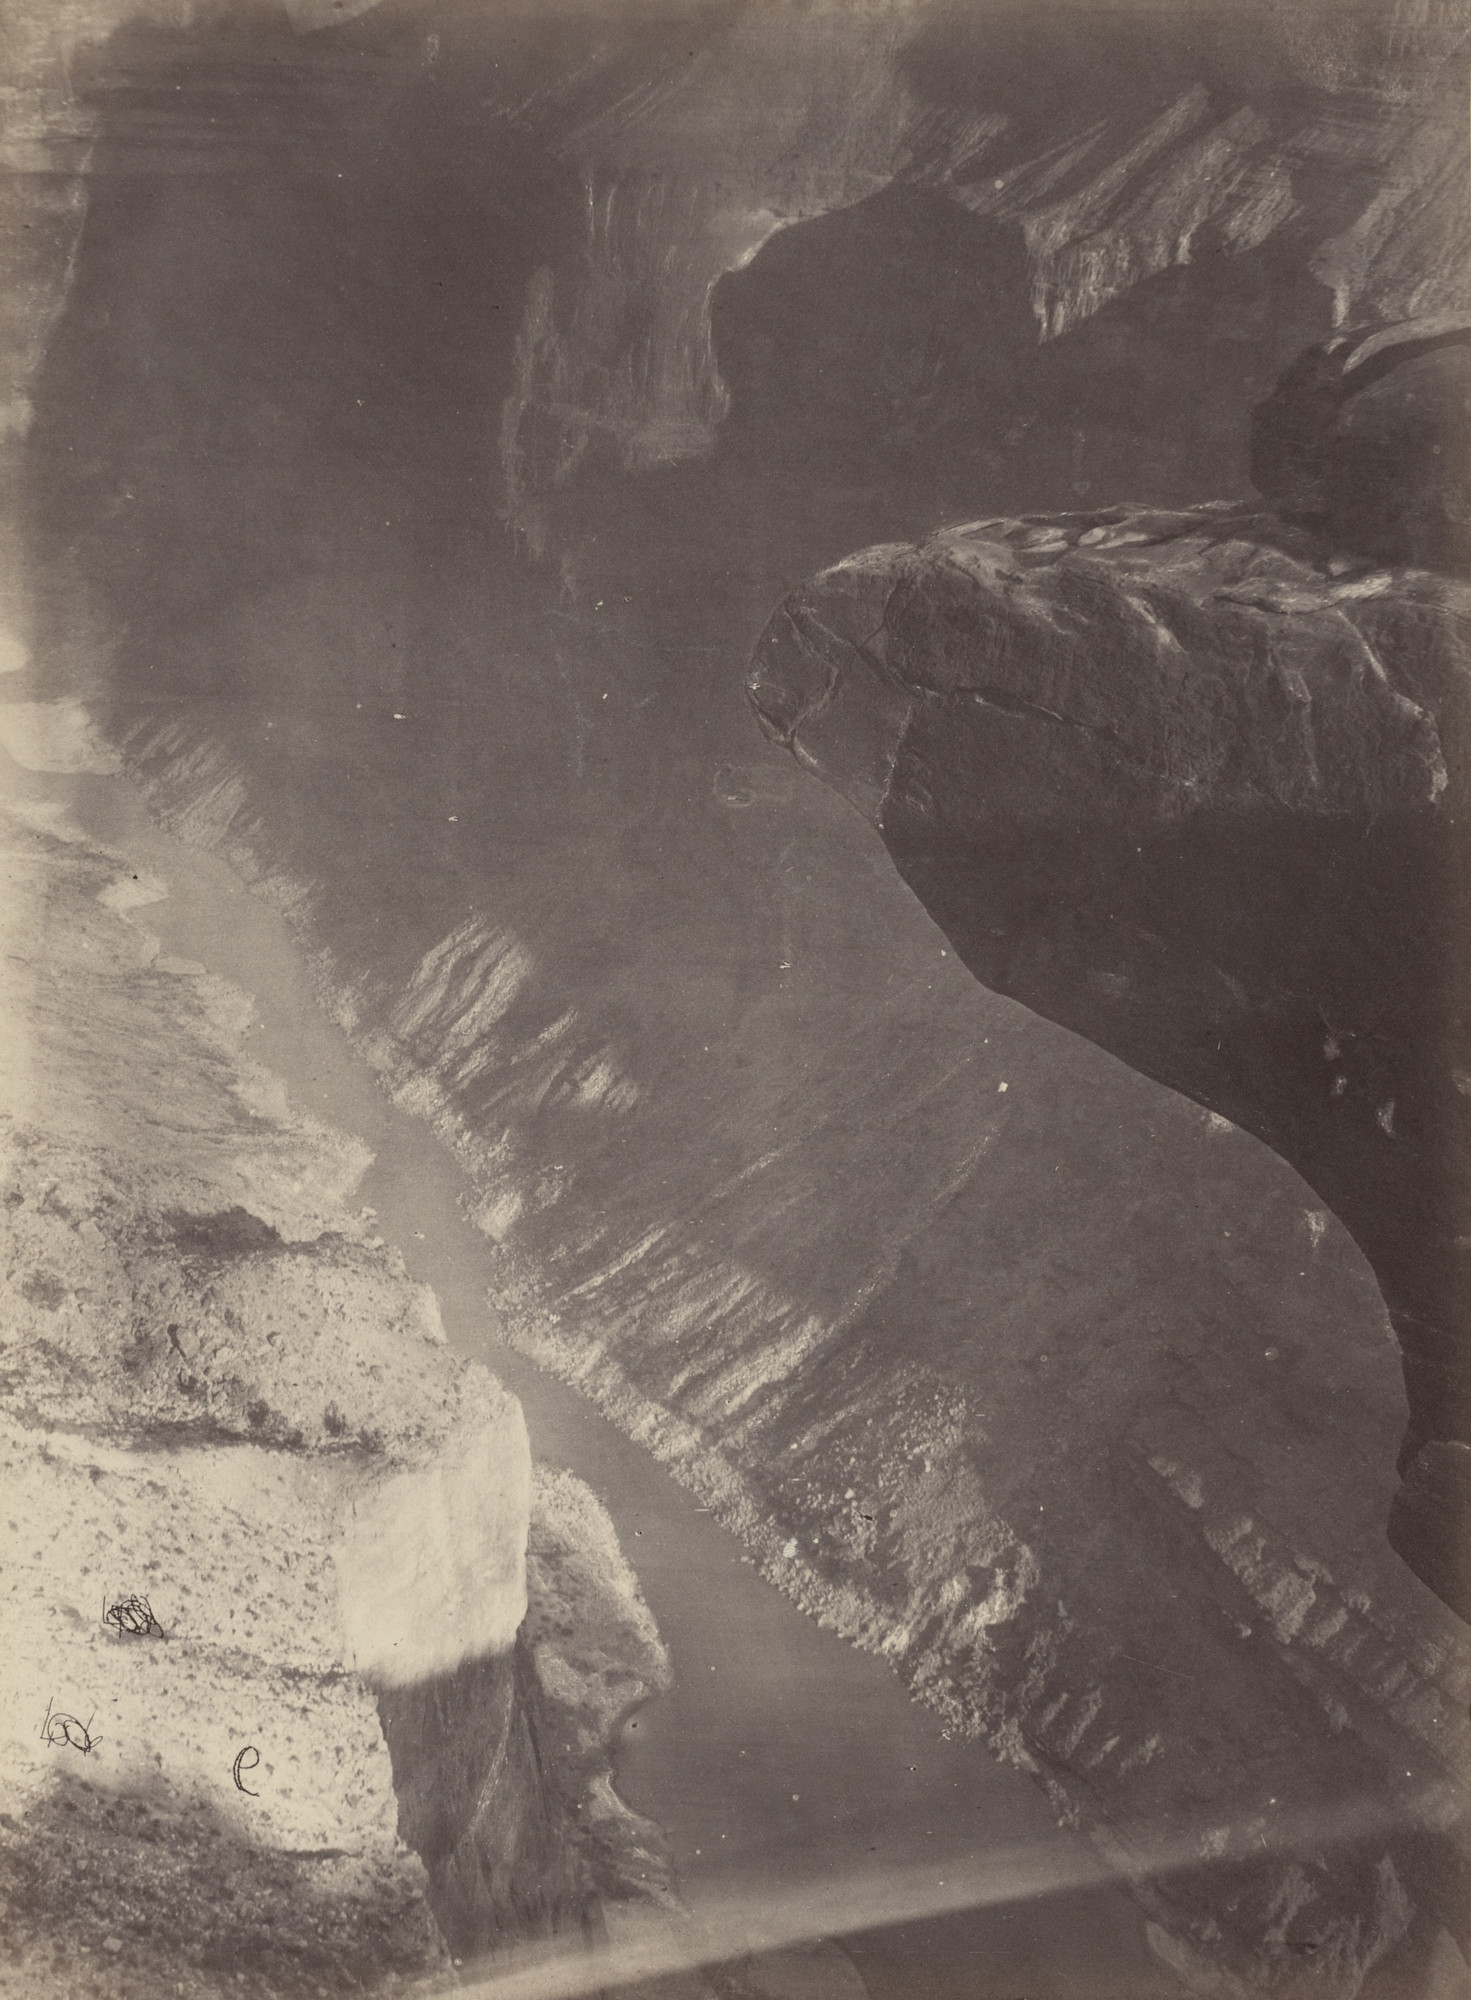 Timothy O'Sullivan, William H. Bell. Looking South into the Grand Canyon, Colorado River. Seasons of 1871, 1872 and 1873